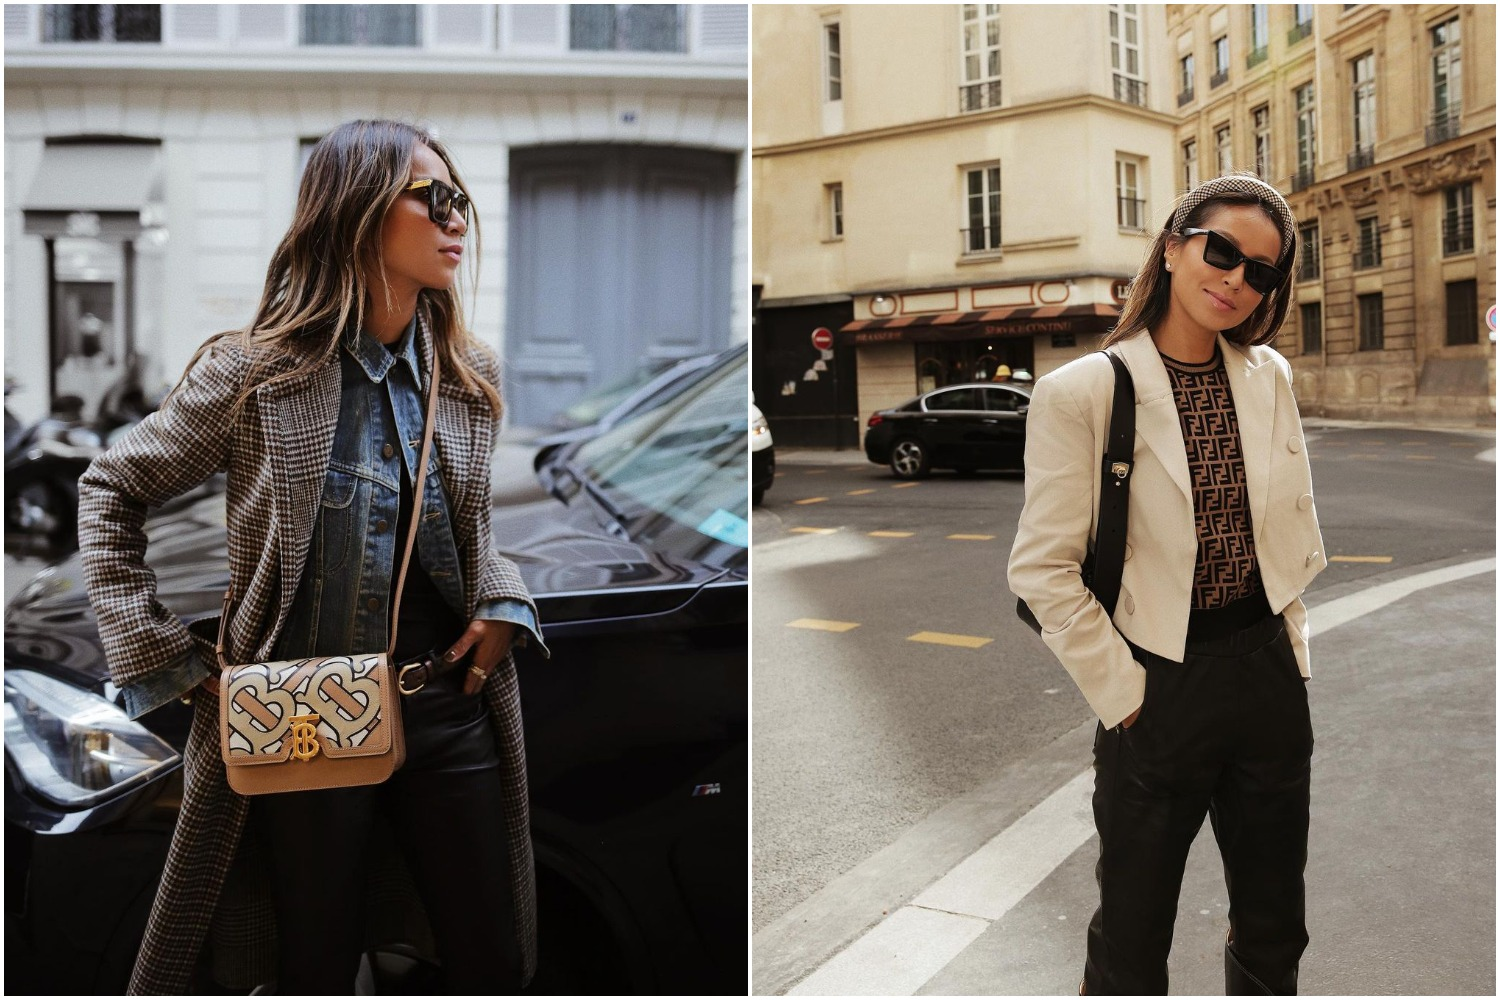 FOTO/Instagram @sincerelyjules